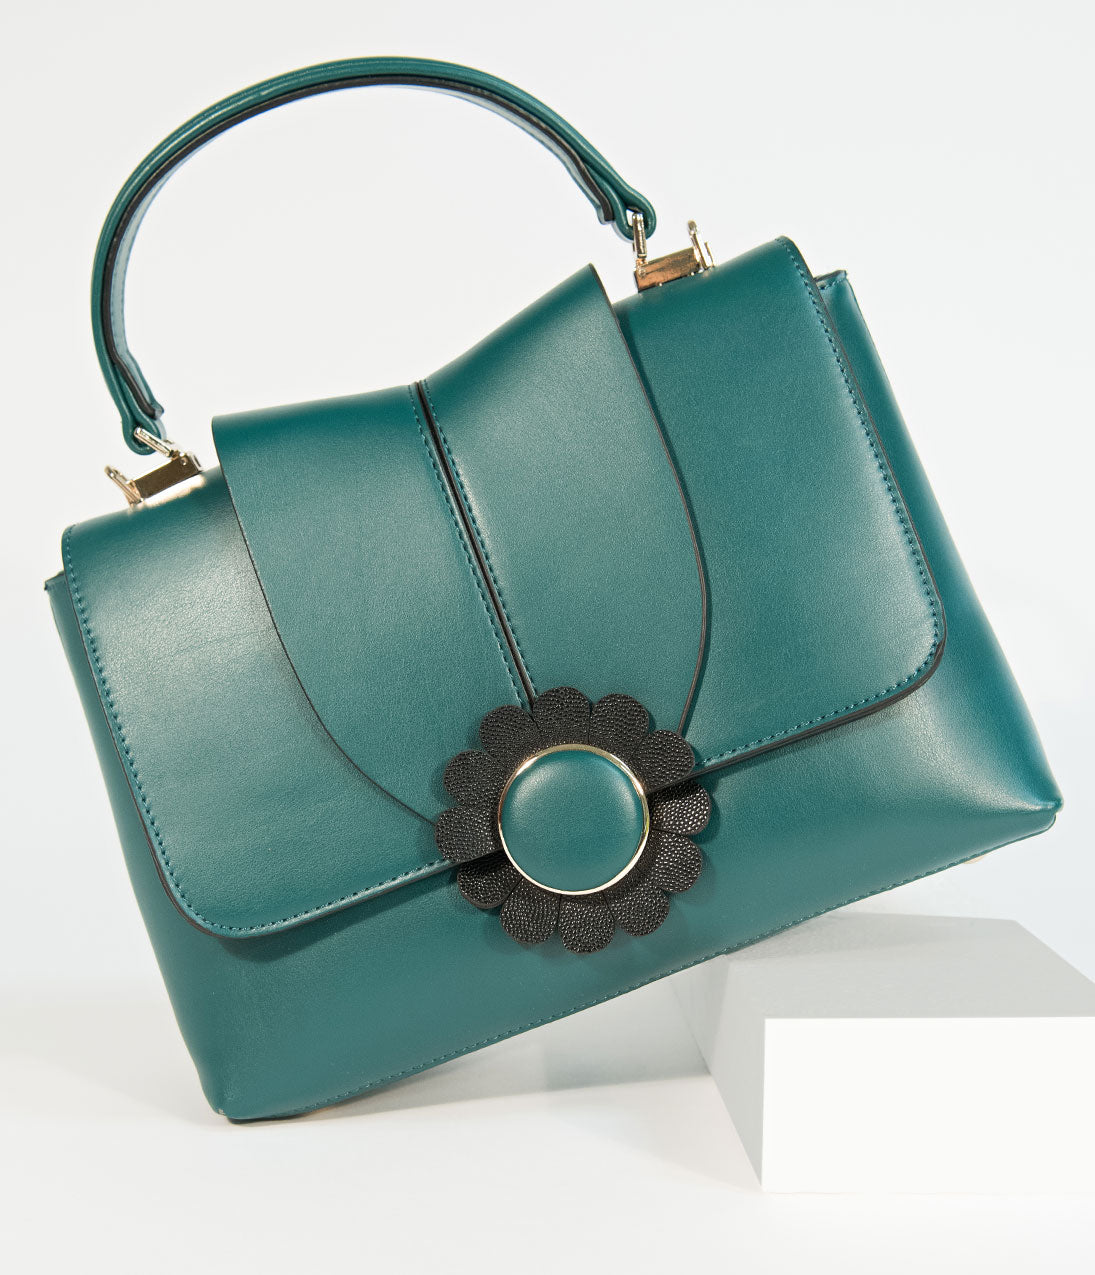 1950s Handbags, Purses, and Evening Bag Styles Banned Emerald Green Leatherette Bellis Handbag $74.00 AT vintagedancer.com